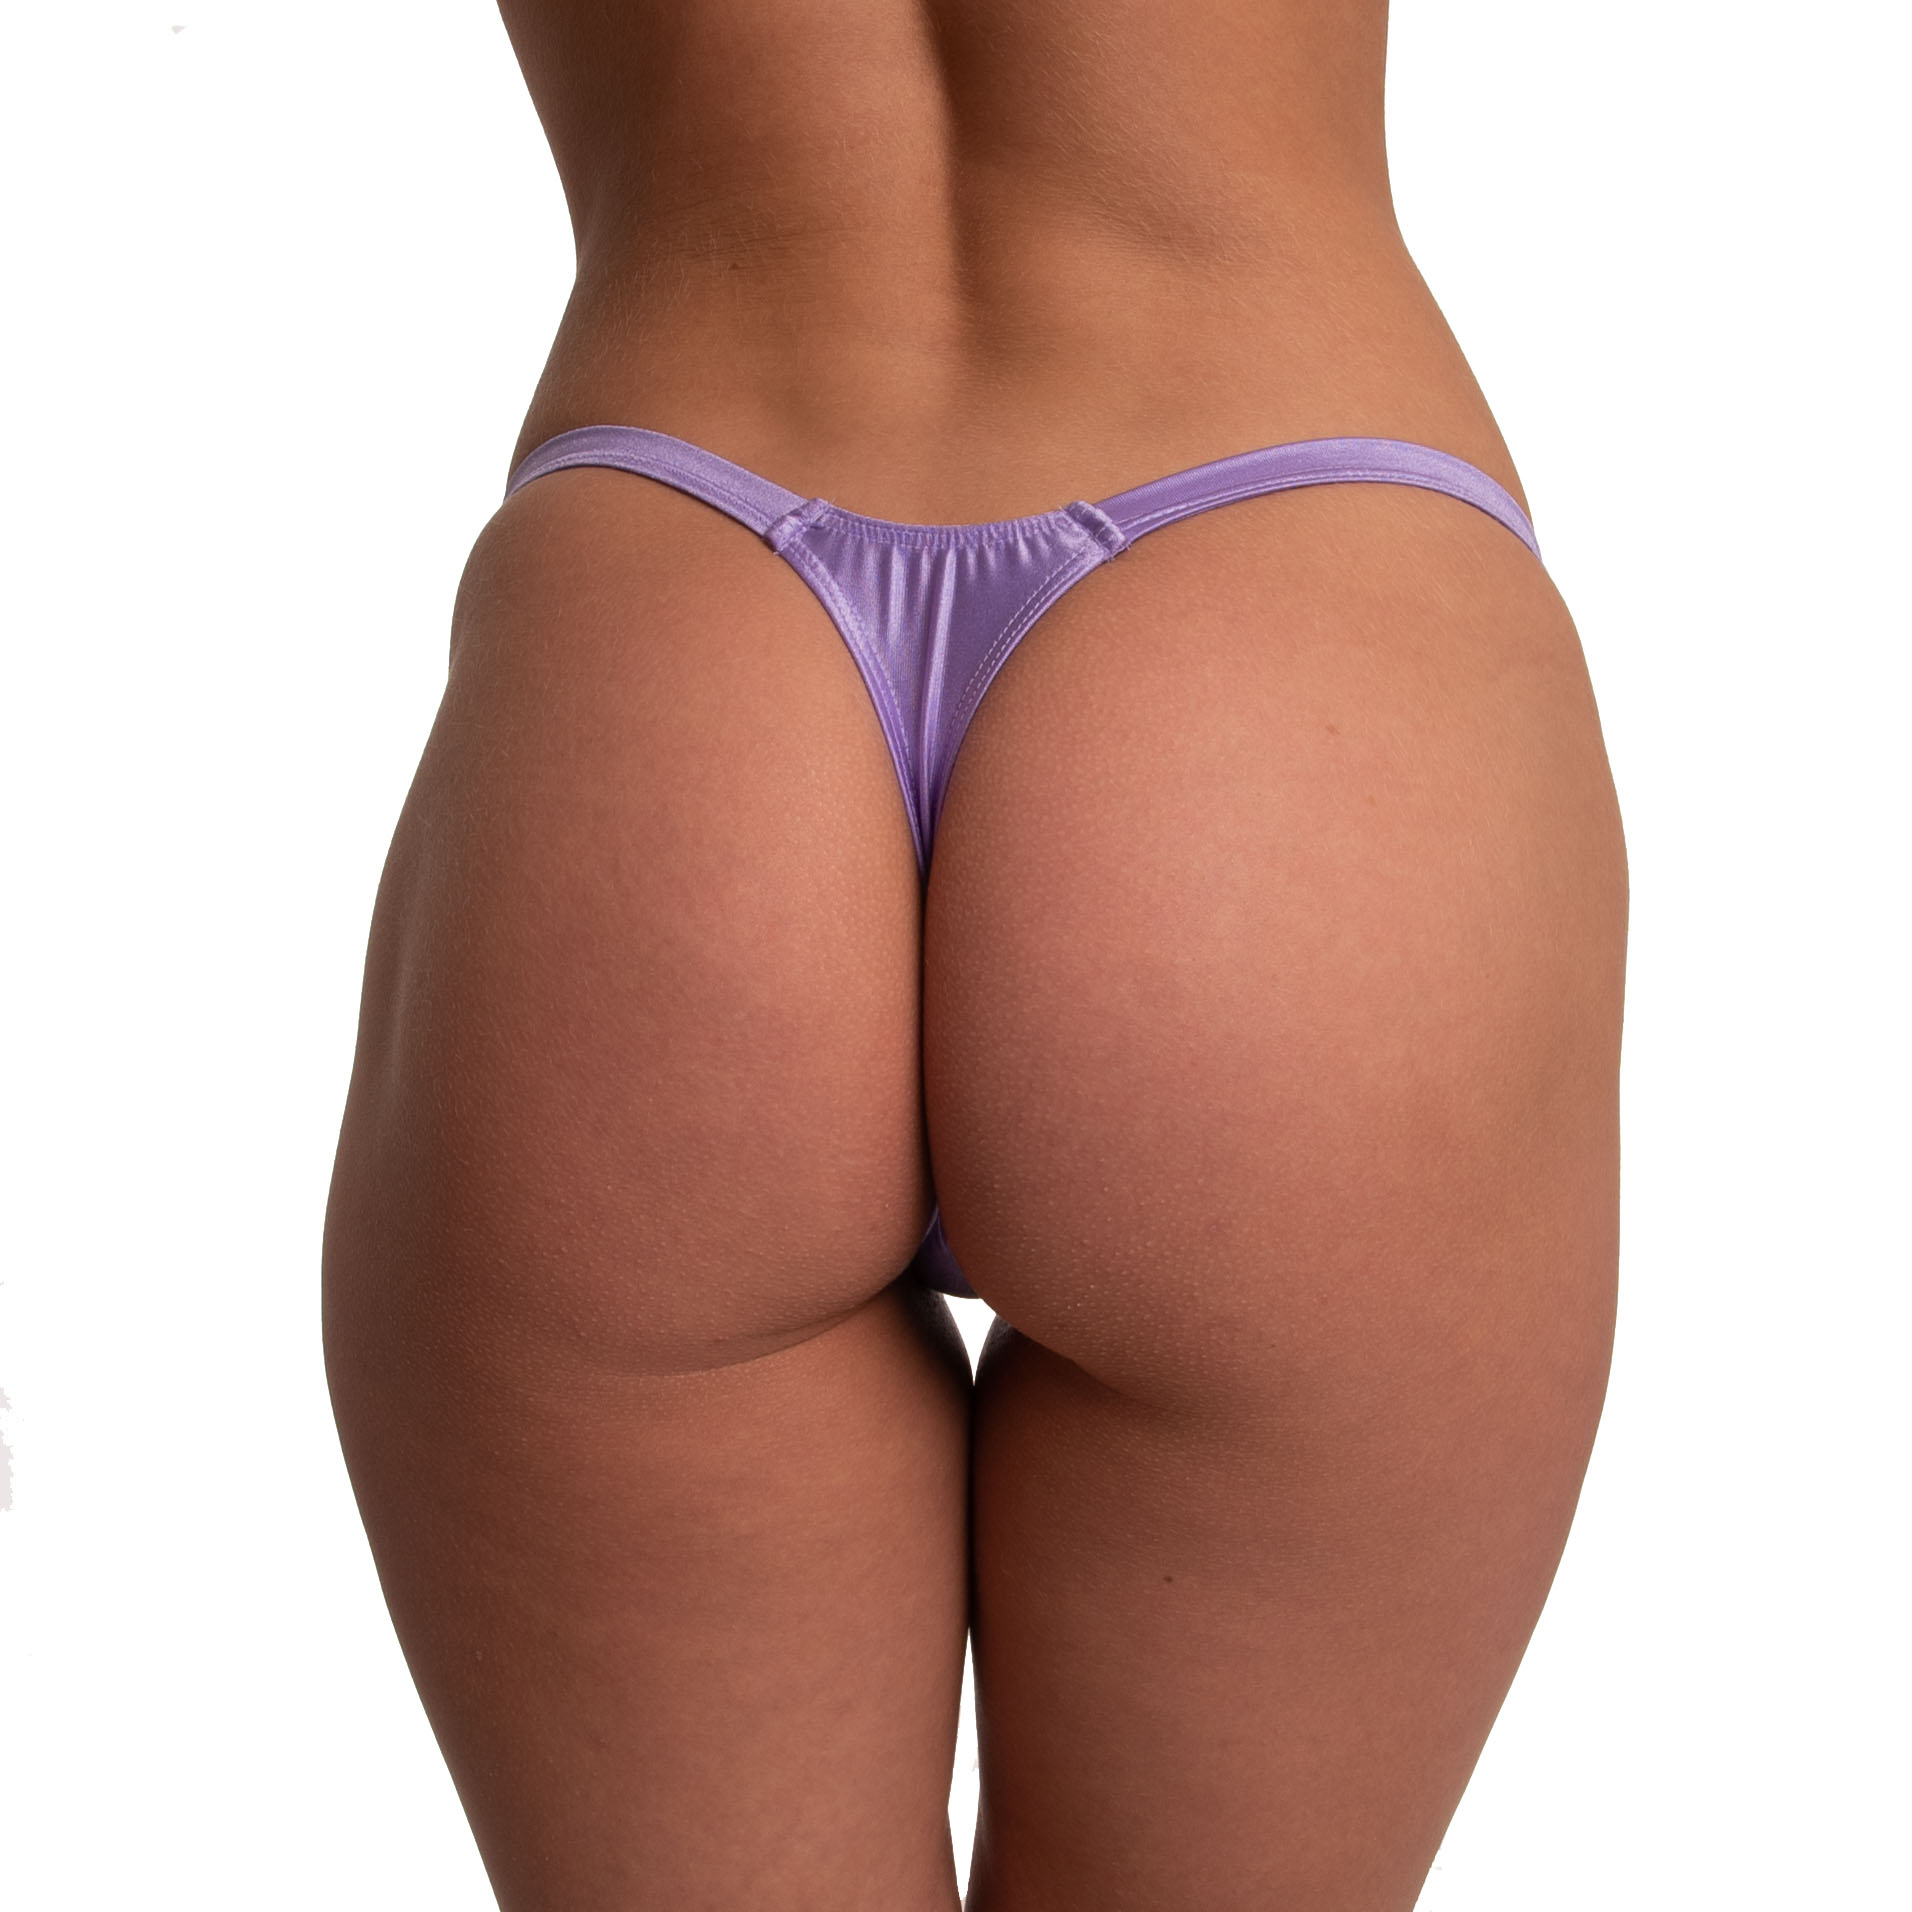 sewing pattern for super low comfort thong